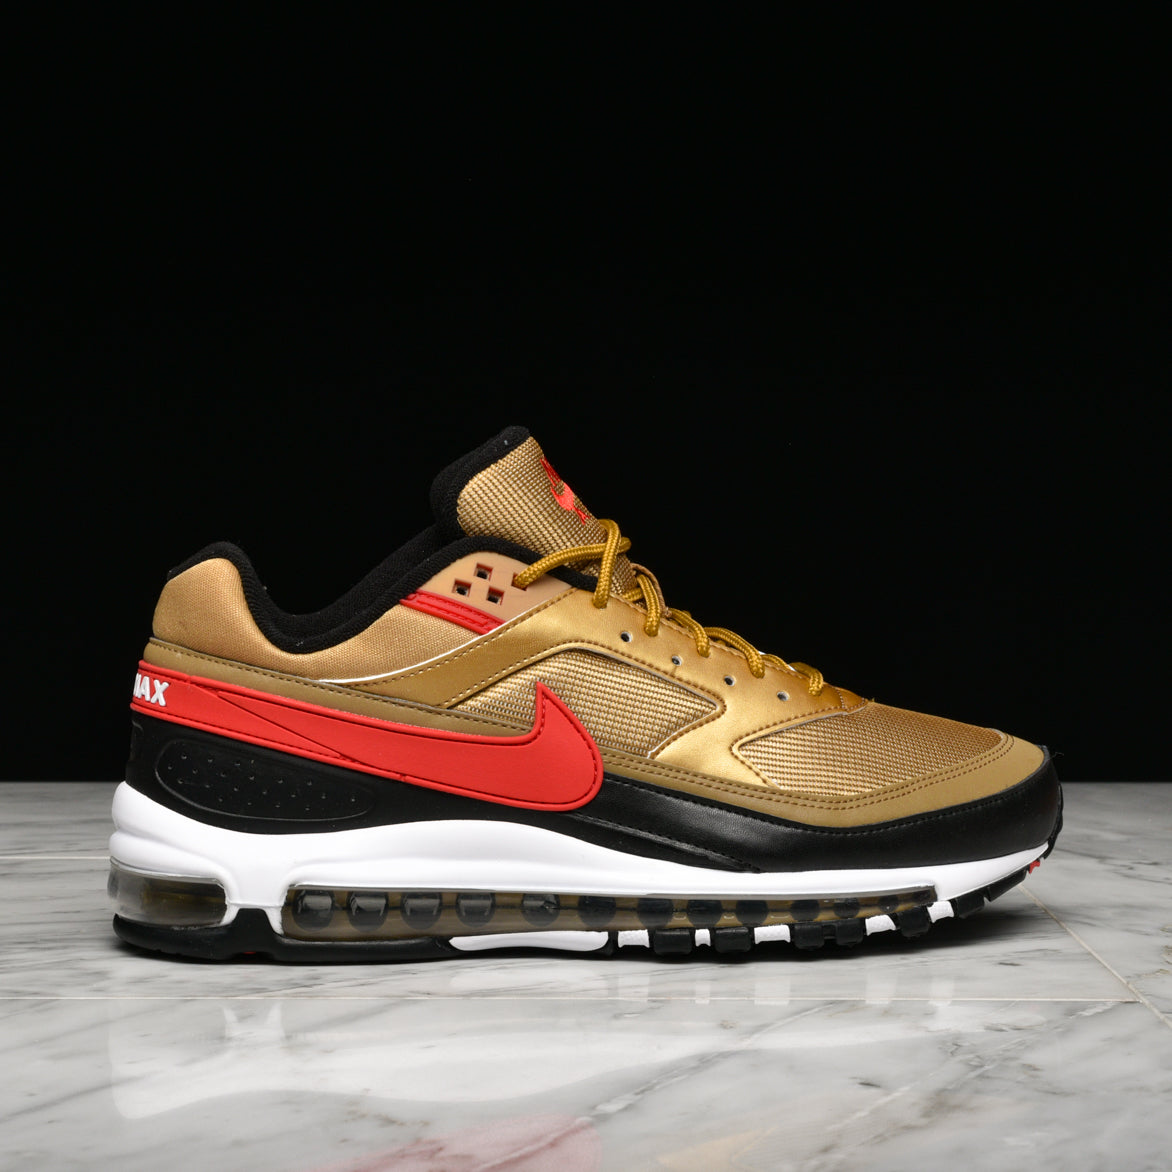 new york hot sale online outlet online AIR MAX 97/BW - METALLIC GOLD / UNIVERSITY RED